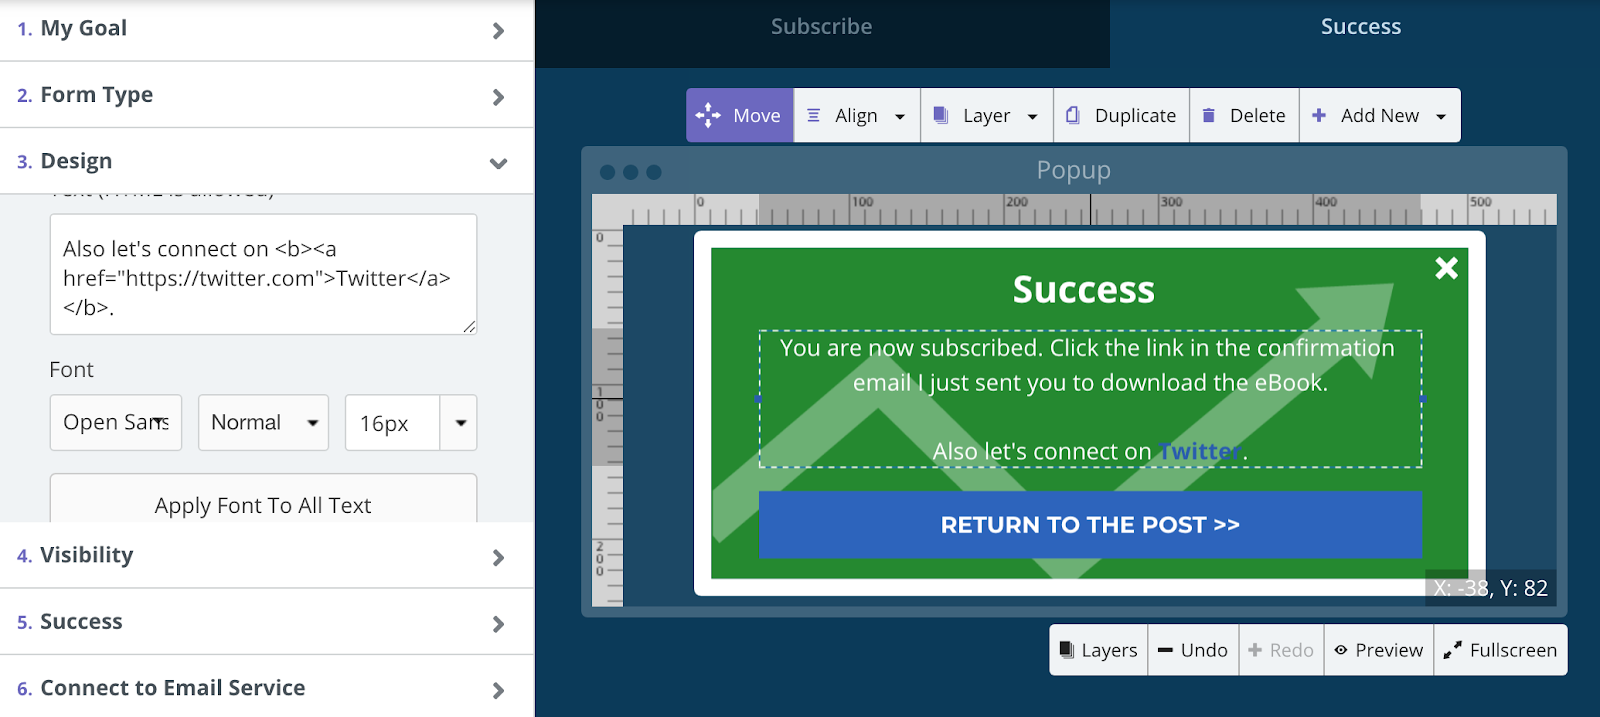 Screenshot showing the Sumo form creation page